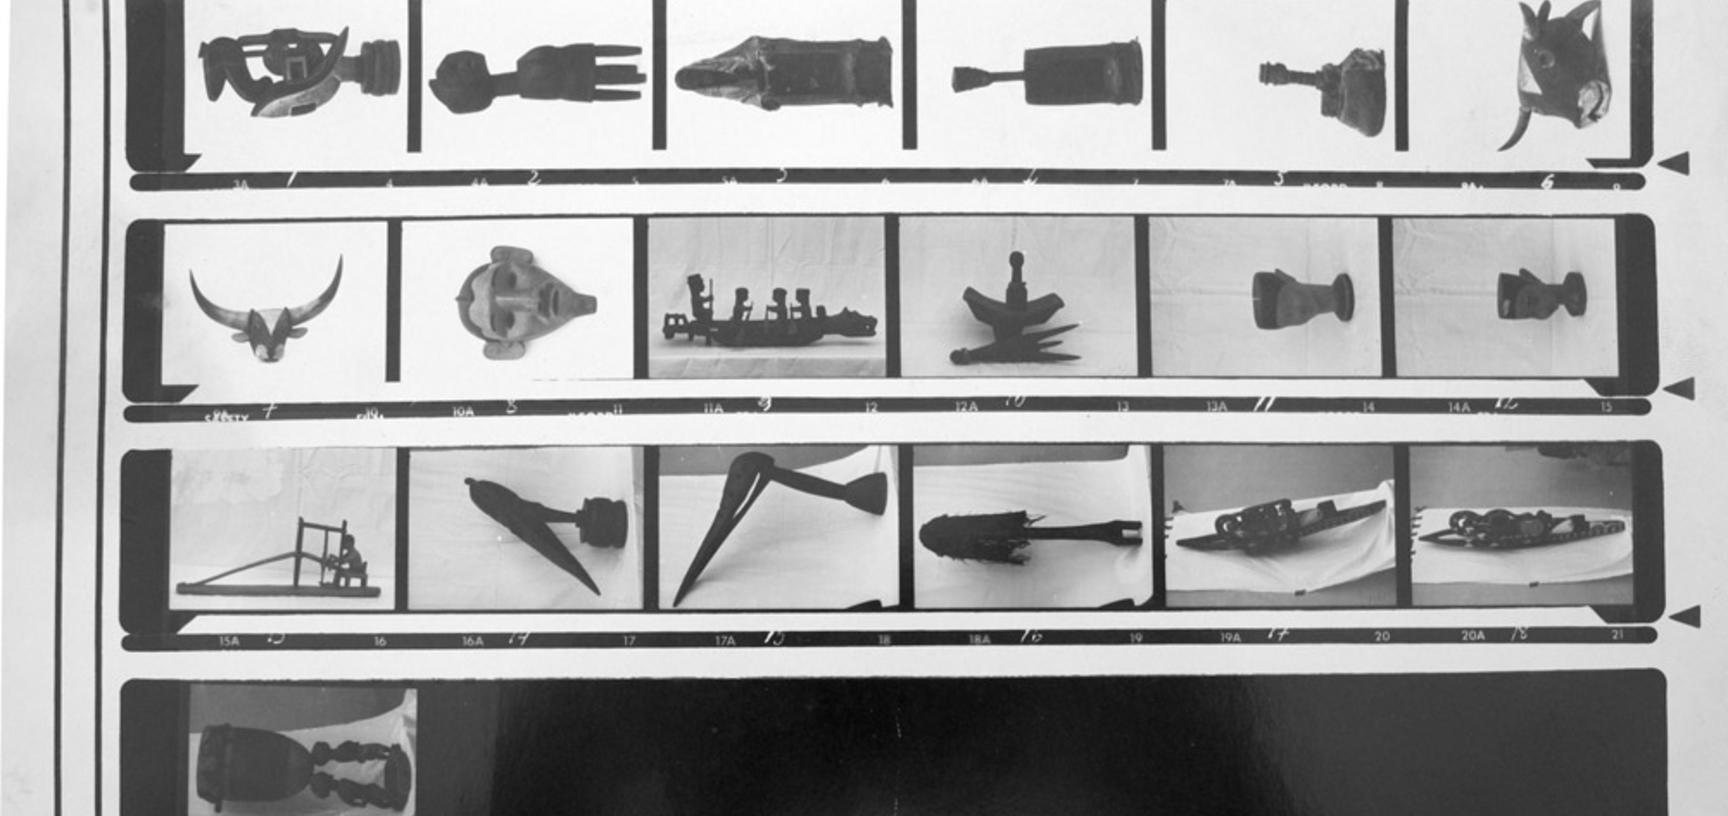 Contact sheet from the collection of the Ethnographic Museum of Guinea-Bissau. (Copyright Ethnographic Museum of Guinea-Bissau)